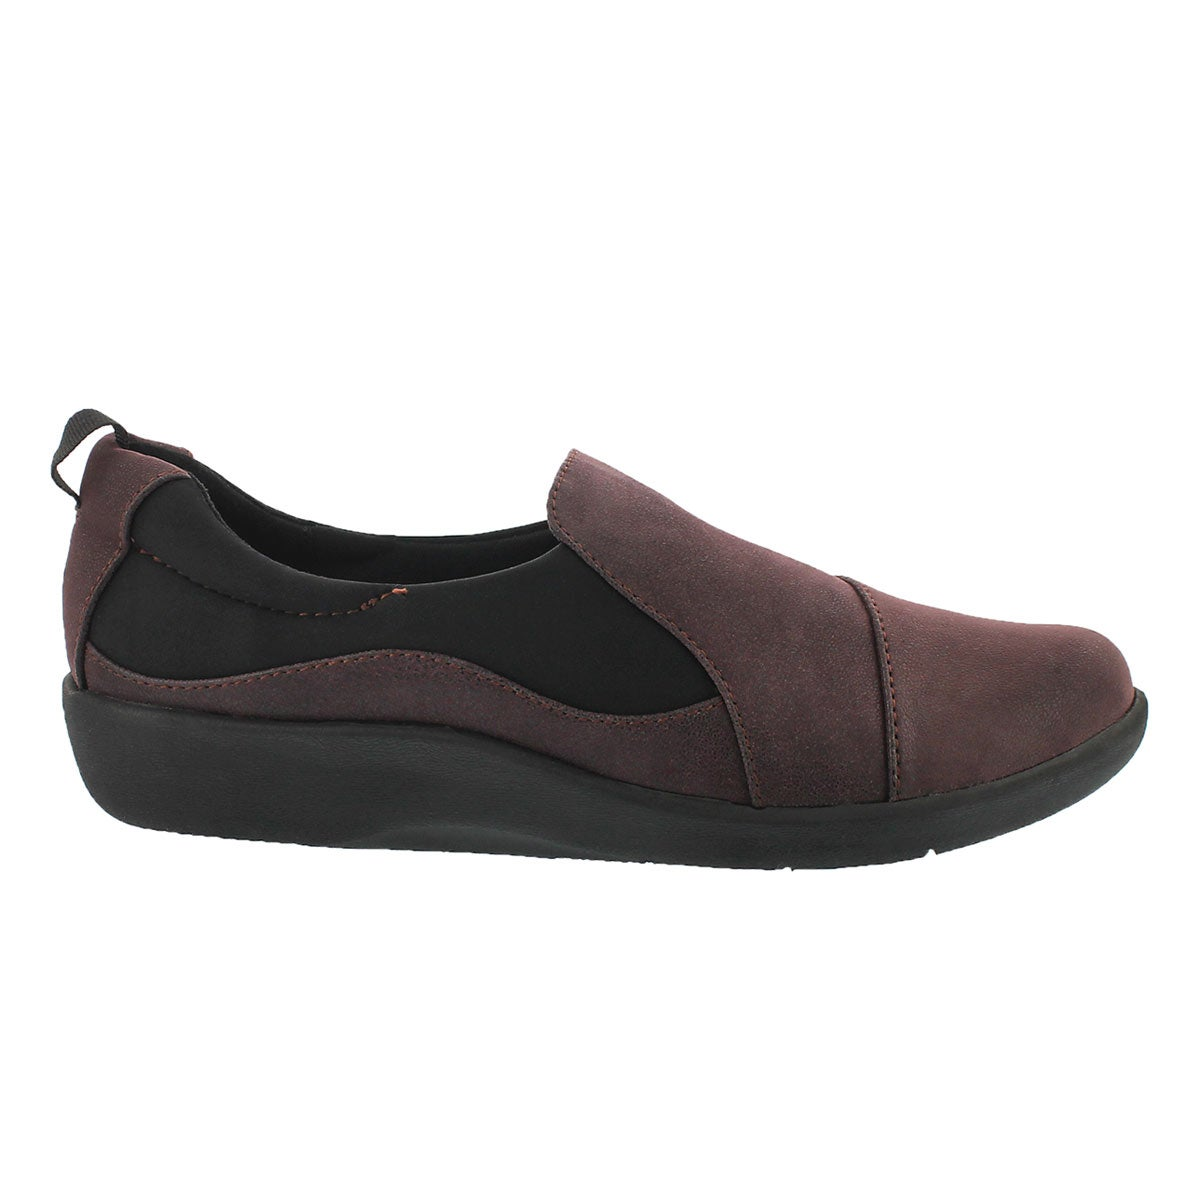 Lds Sillian Paz aubergine casual loafer